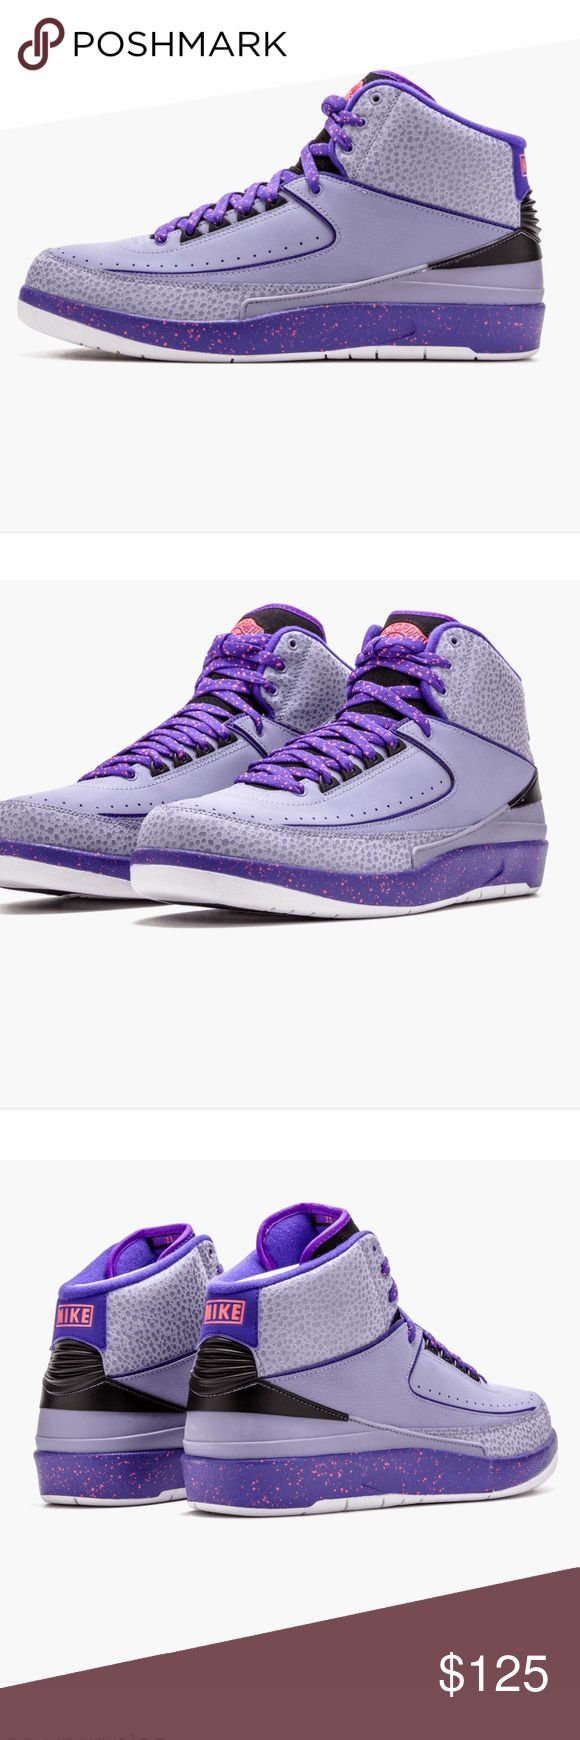 Air Jordan Retro 2 Iron Purple Used Good Condition. No holds. No trades. No off site transactions. No damages. Original Box. Offers Accepted. No low ball offers. Air Jordan Shoes Sneakers